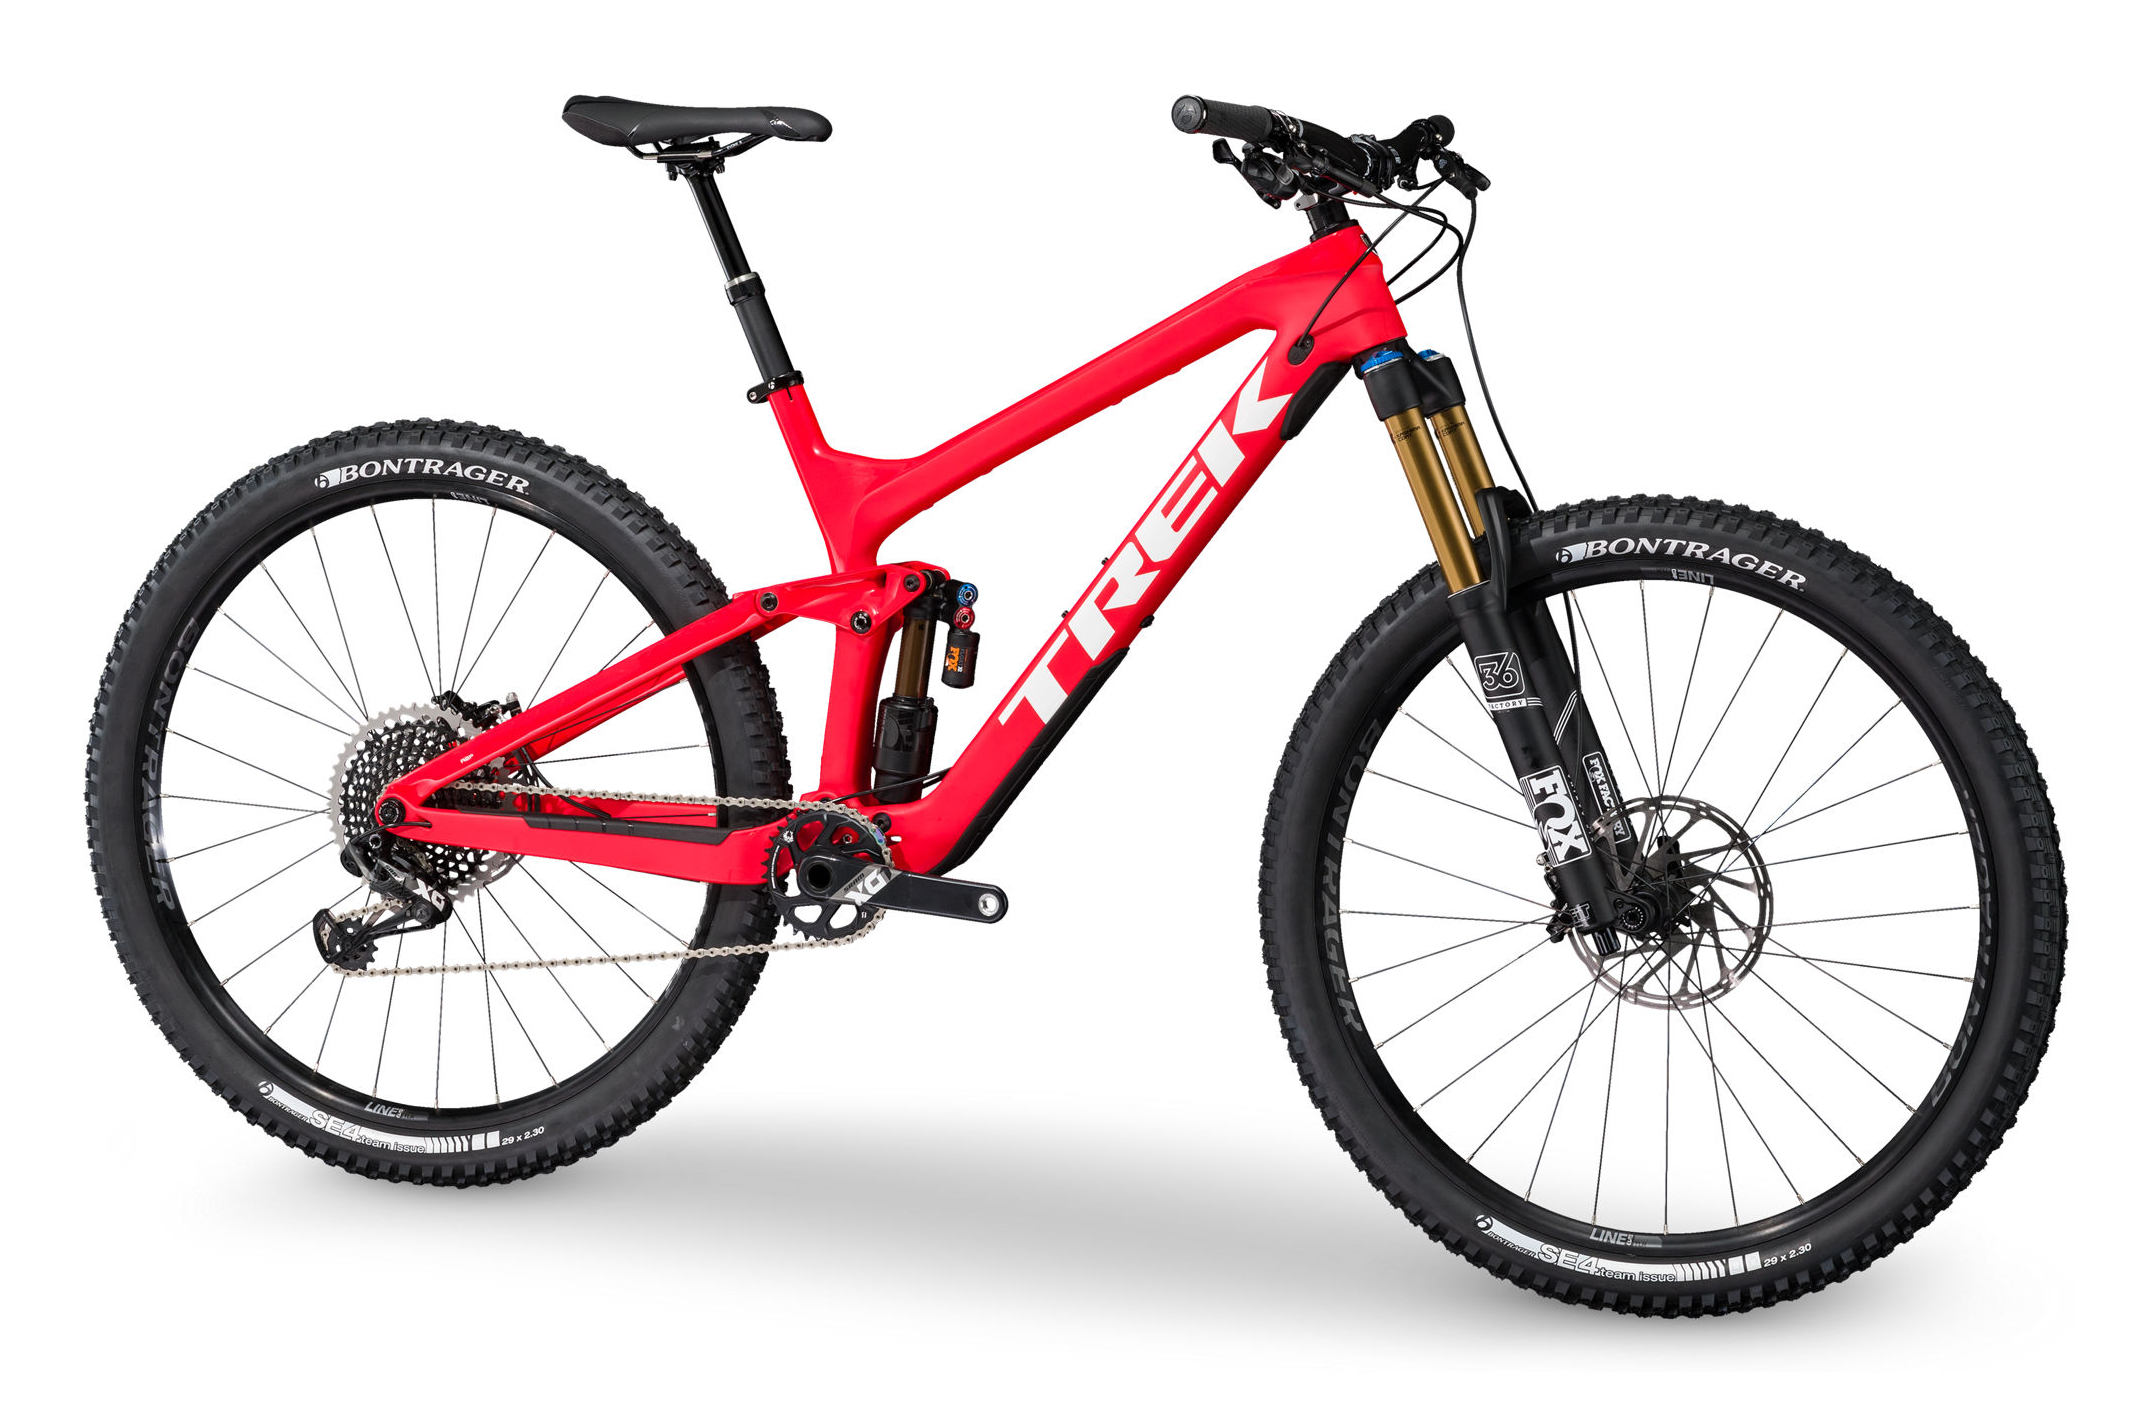 Trek Slash 9 9 29er Race Shop Limited Mountain Bike 2017 Red White